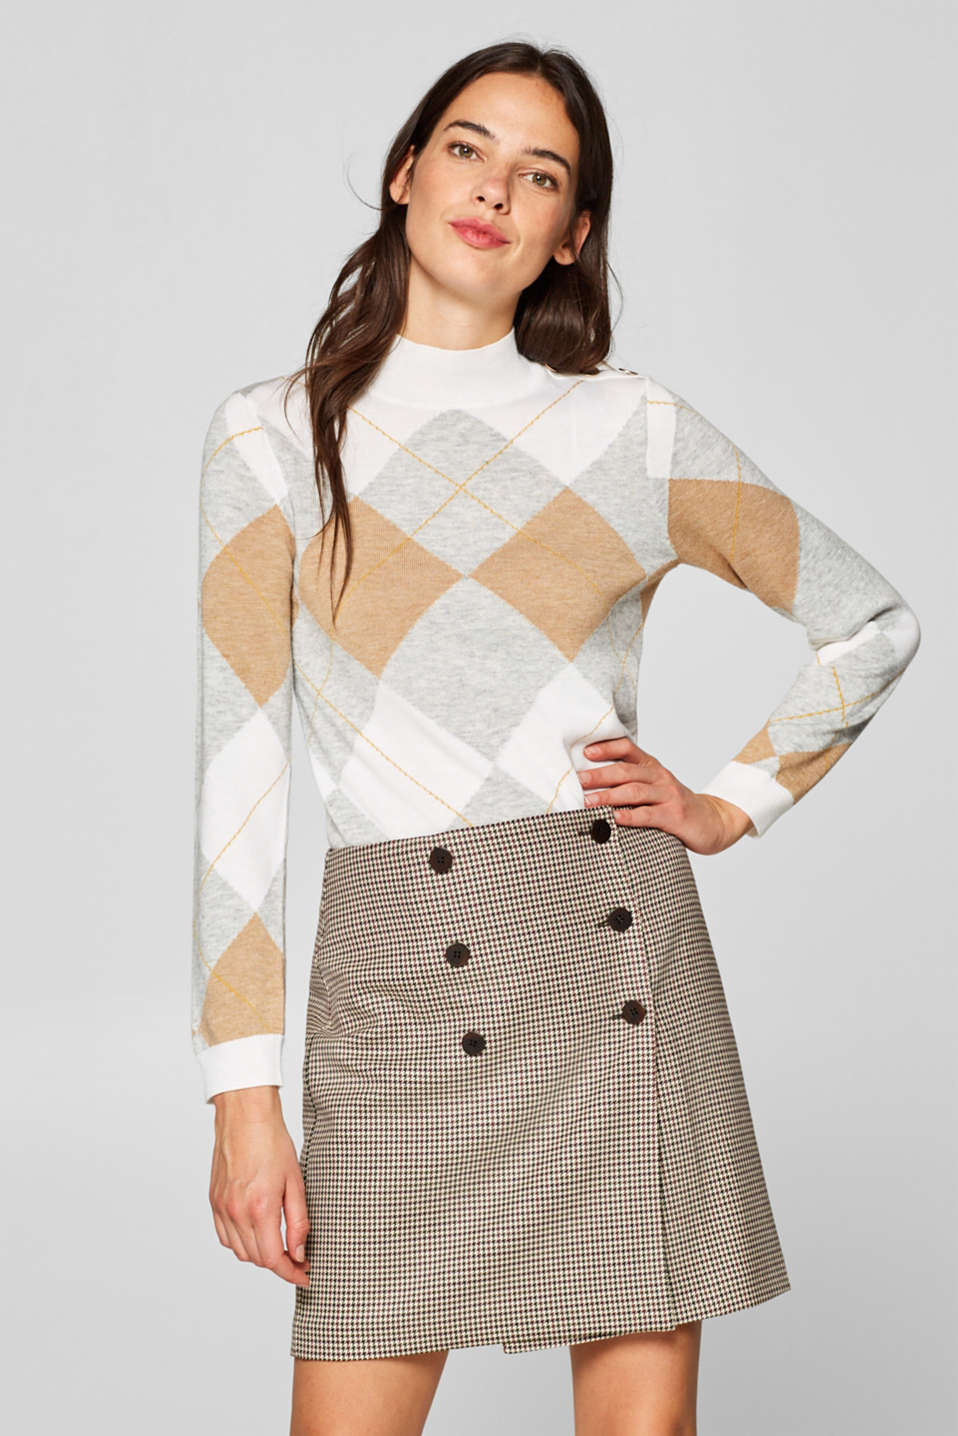 Esprit - Jumper with an Argyle check pattern and buttons made of blended wool